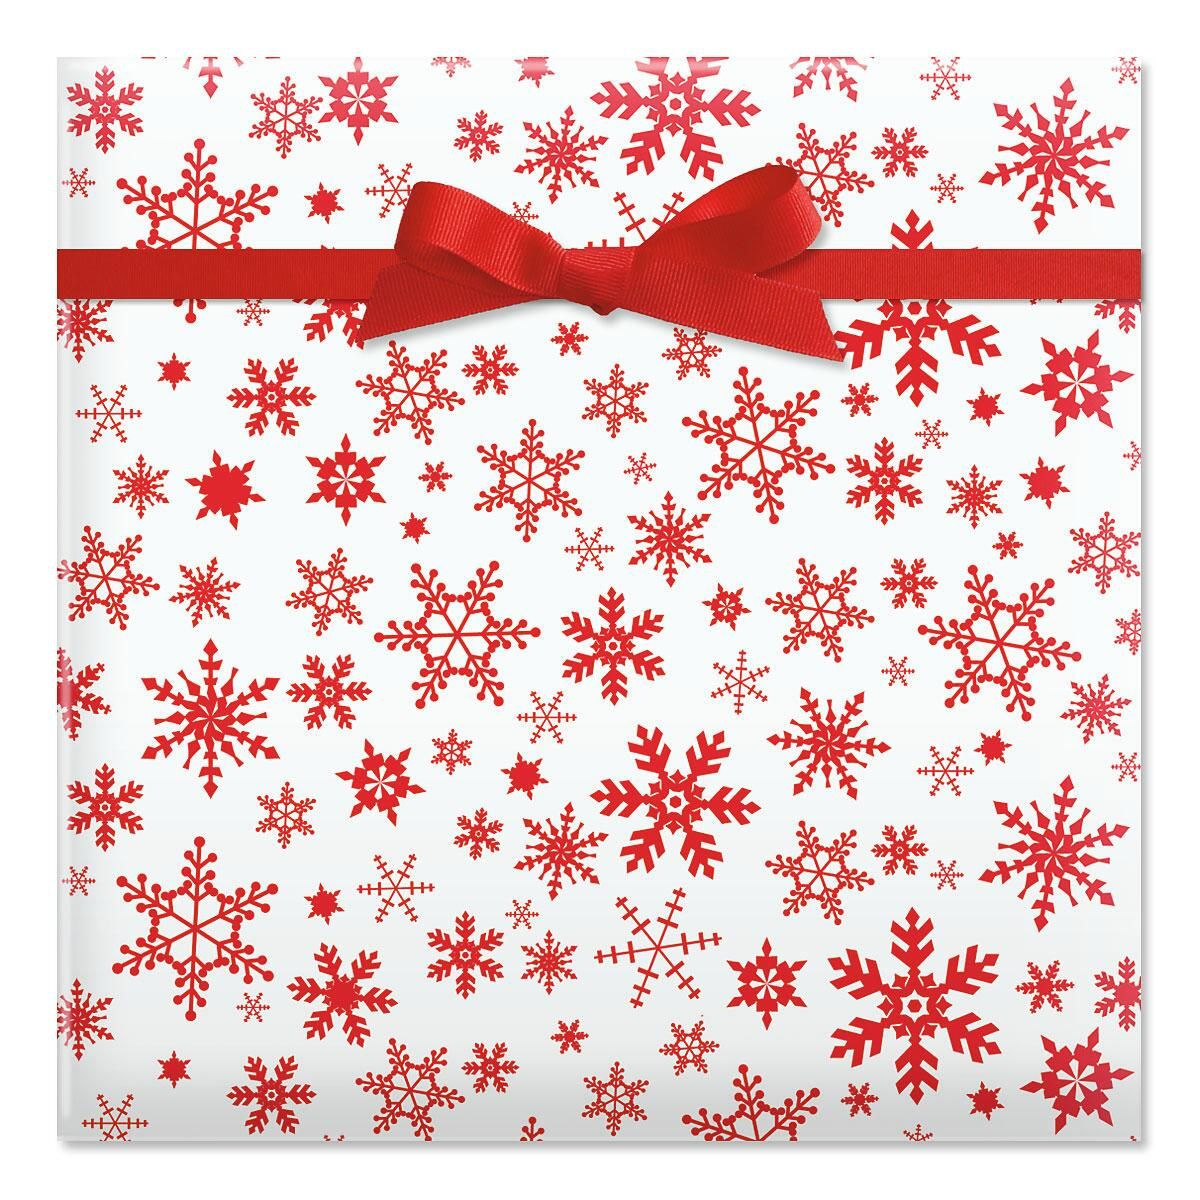 Red Snowflake Jumbo Rolled Gift Wrap